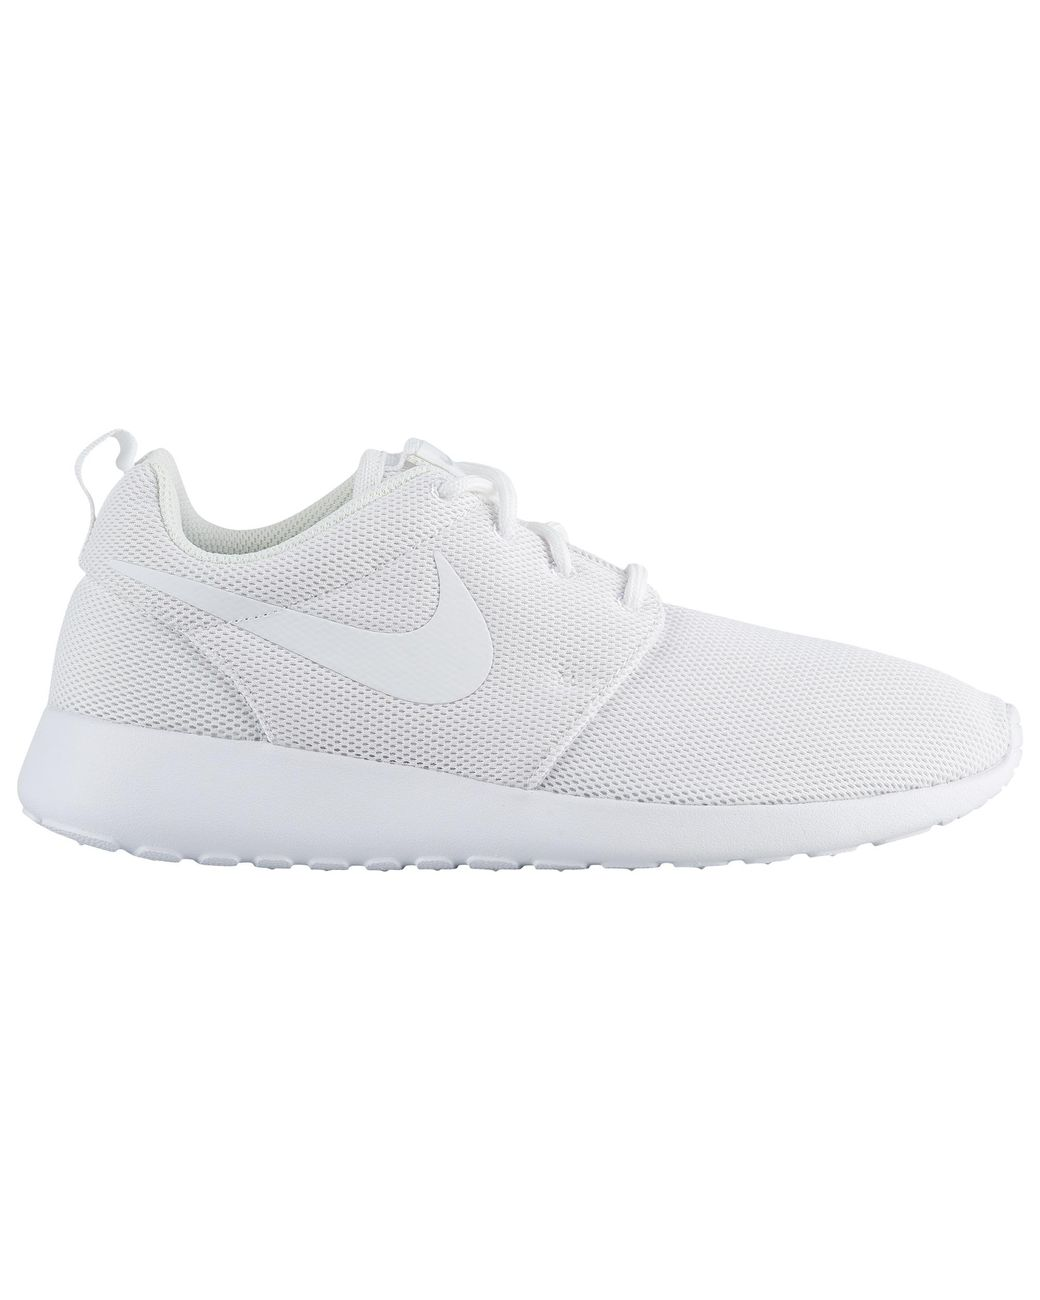 new style fdfeb a4a7f Women's White Roshe One Running Shoes